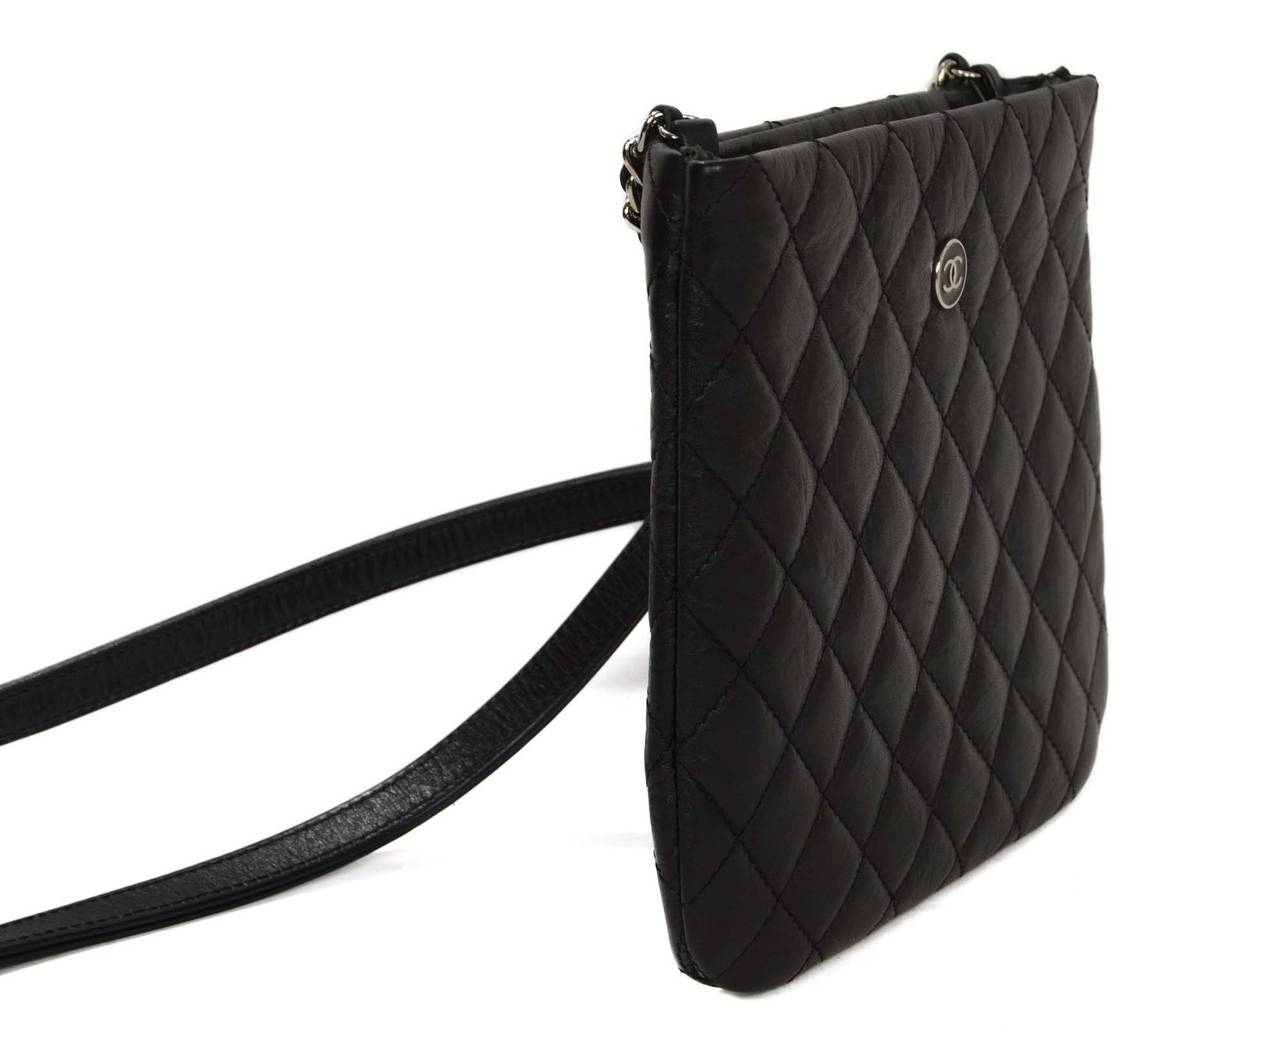 Chanel Quilted Distressed Leather Small Crossbody Bag Features Cc Emblem On Front Of Made